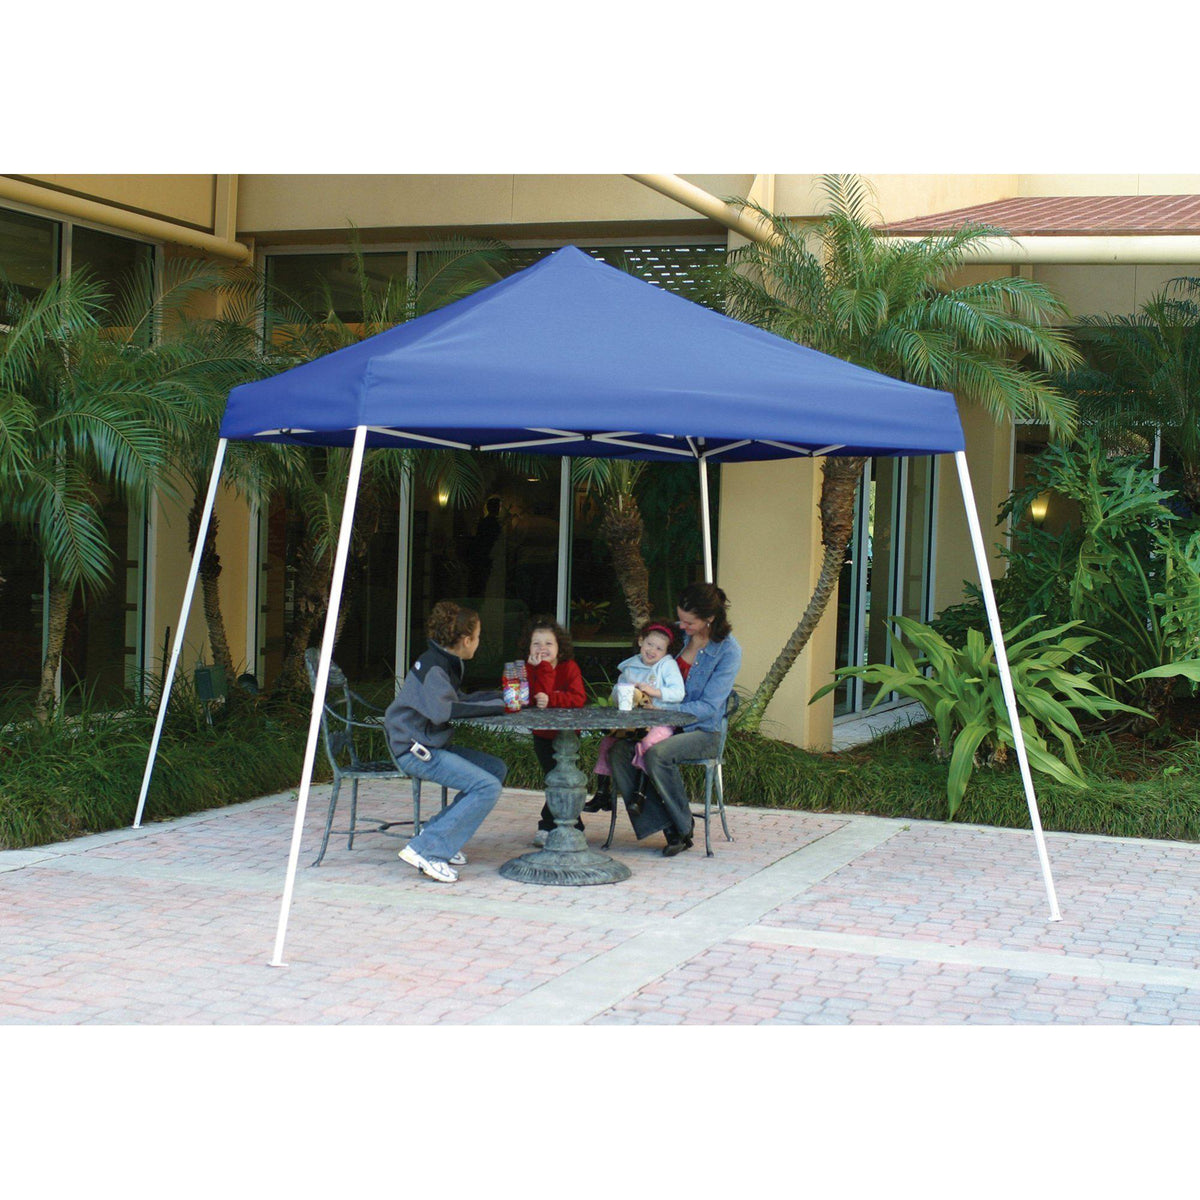 10x10 Slant Leg Pop-up Canopy, Blue Cover, Blue Roller Bag